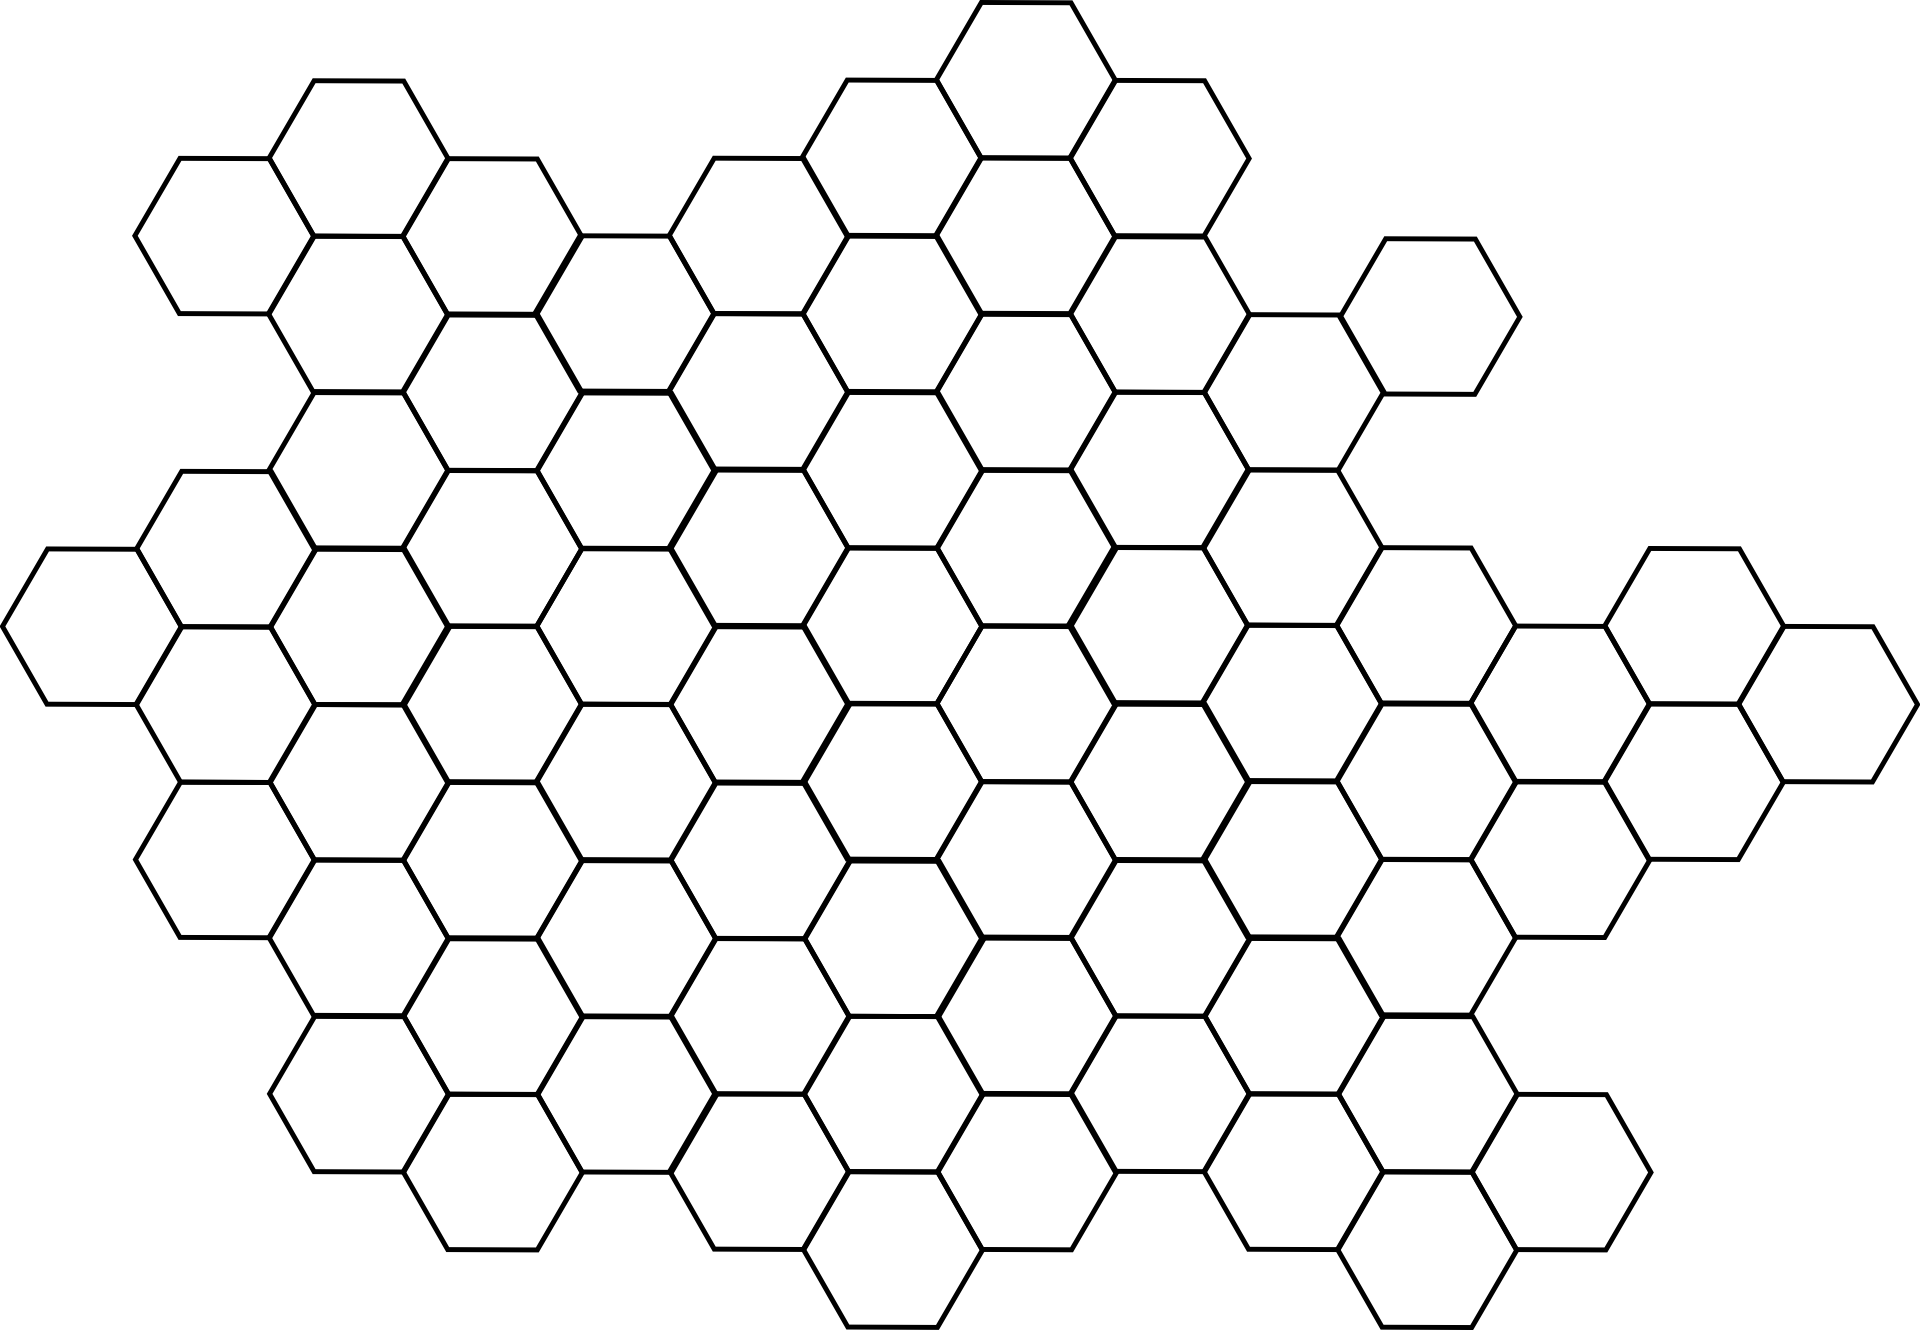 jpg royalty free library Honeycomb pattern clipart